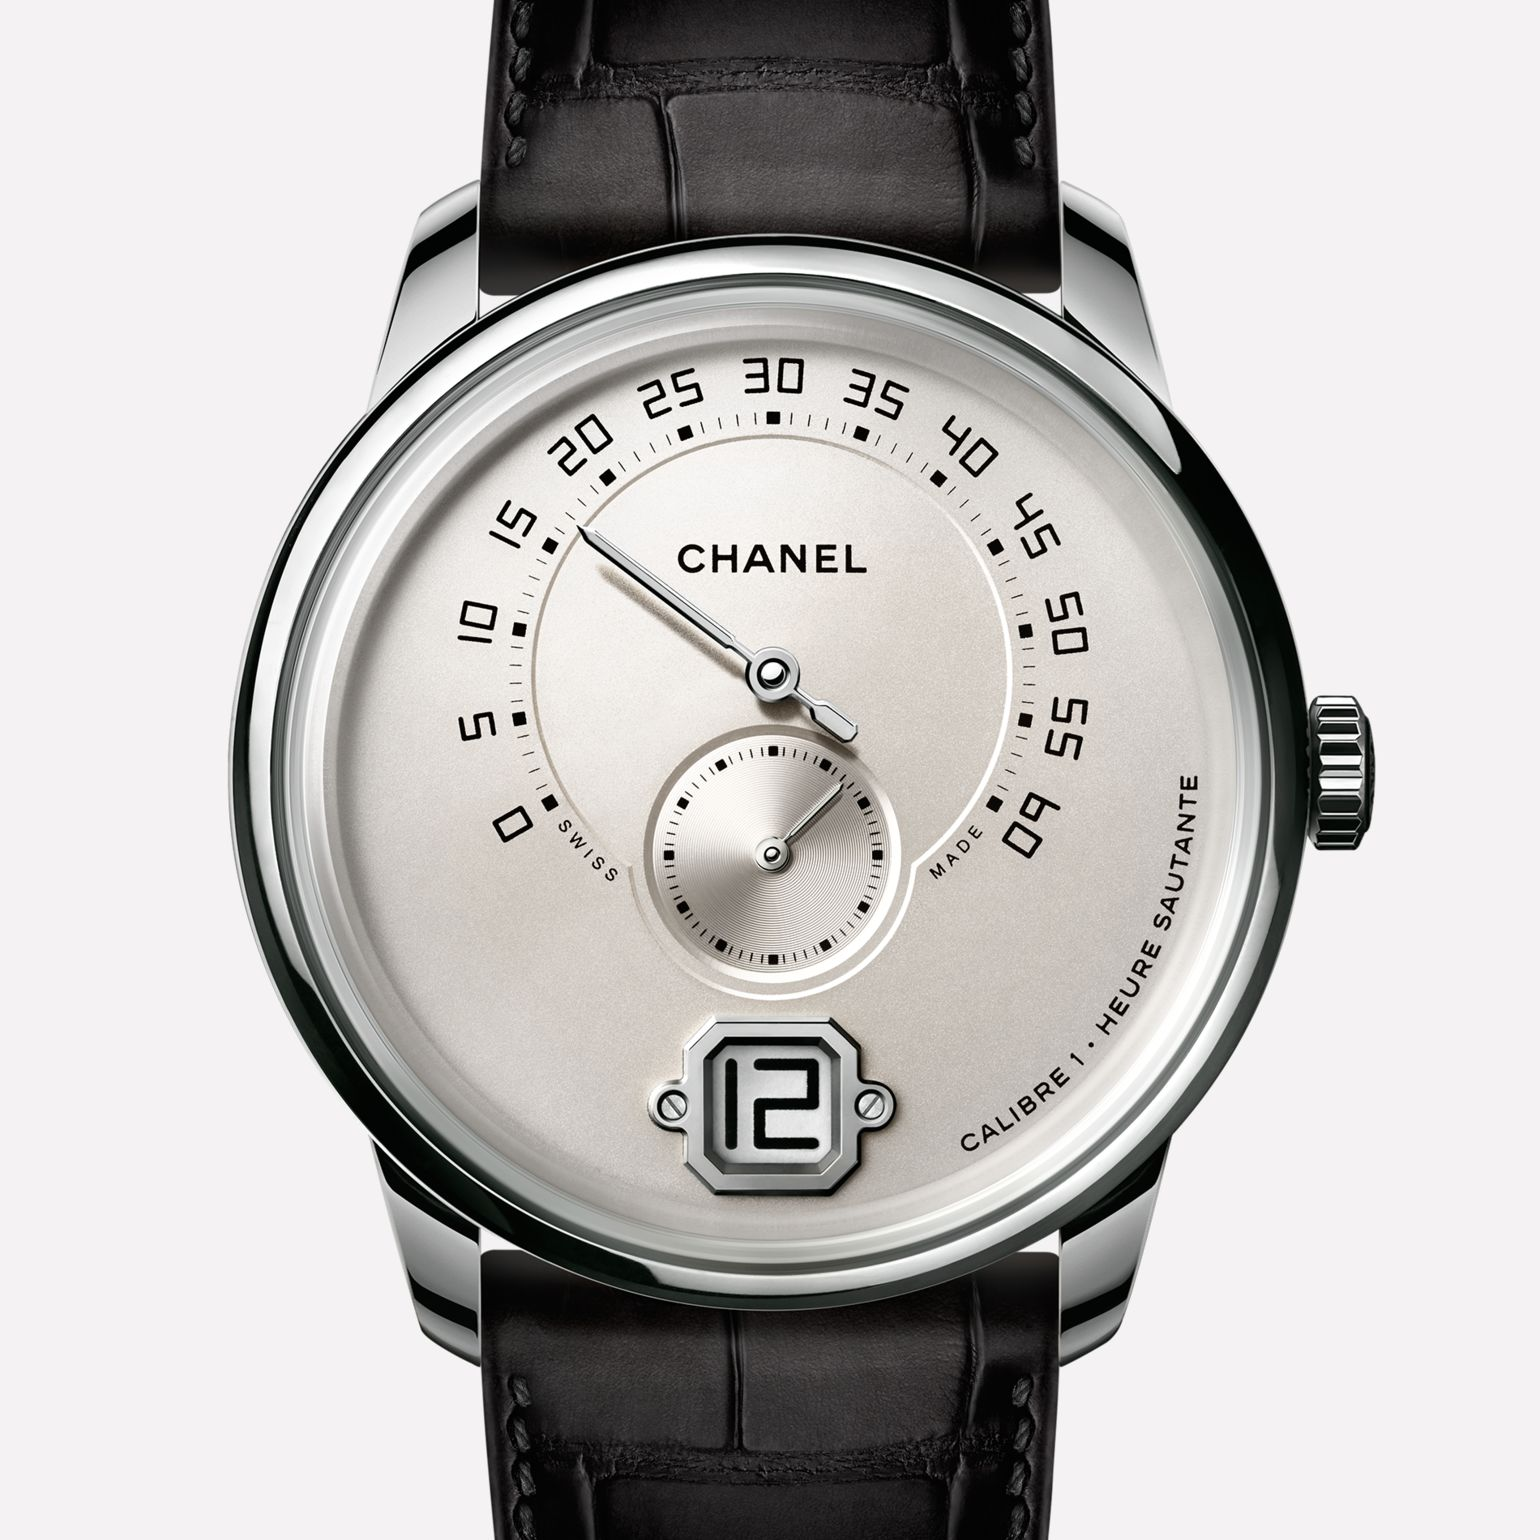 Monsieur de CHANEL Watch White gold, ivory dial with jumping hour, a retrograde minute indication at 240°, and small second counter